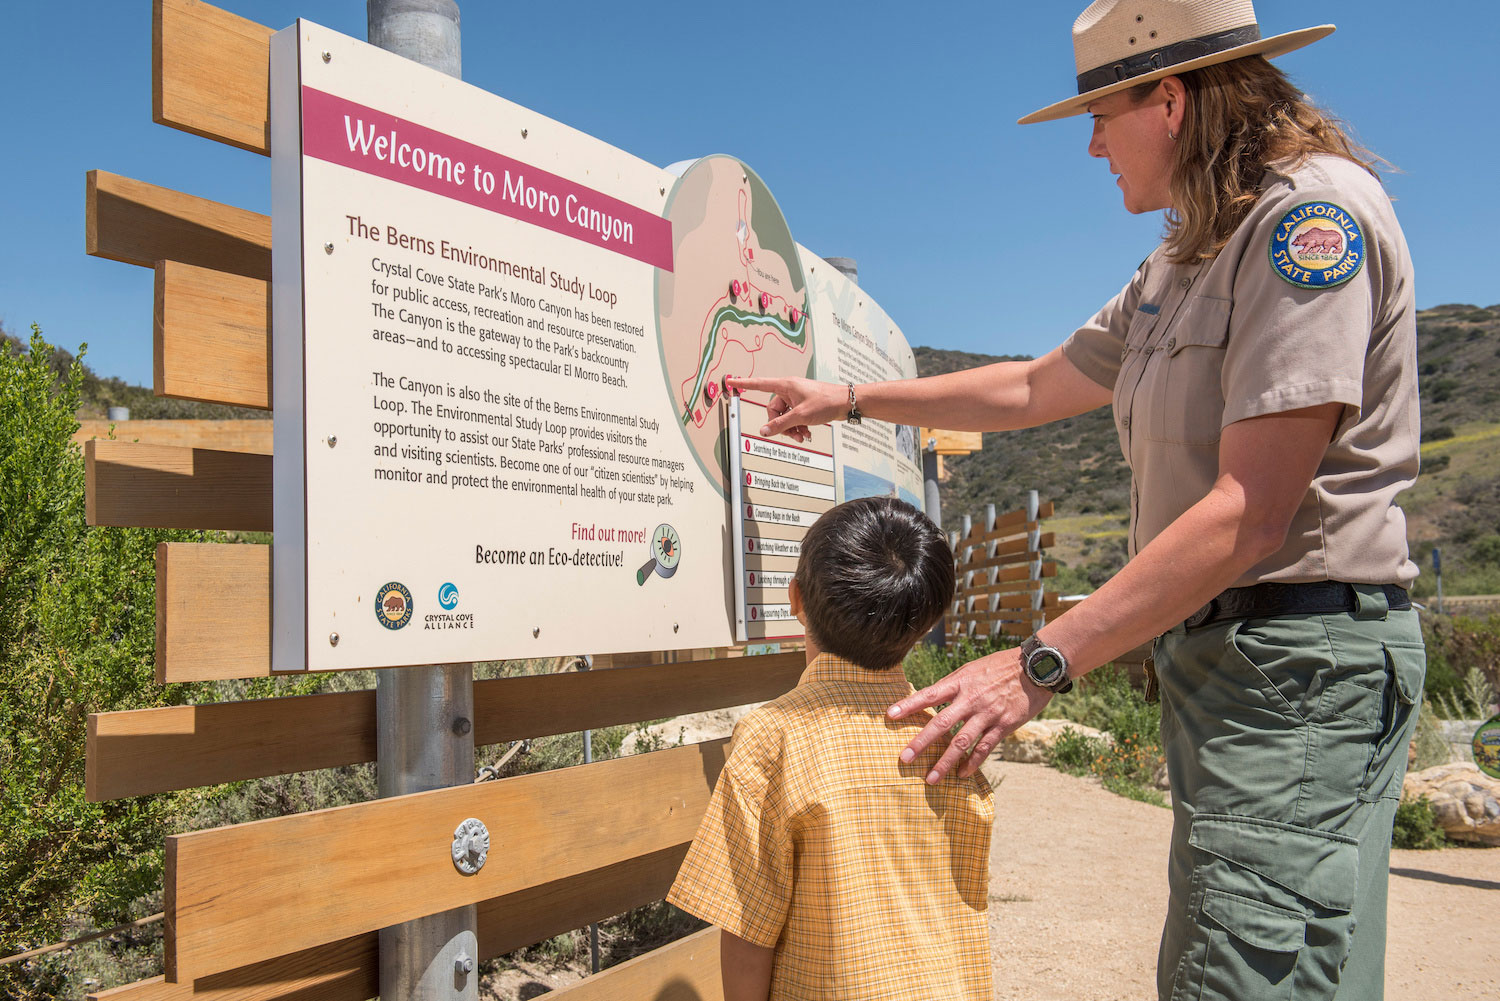 Crystal Cove hosts trail guide